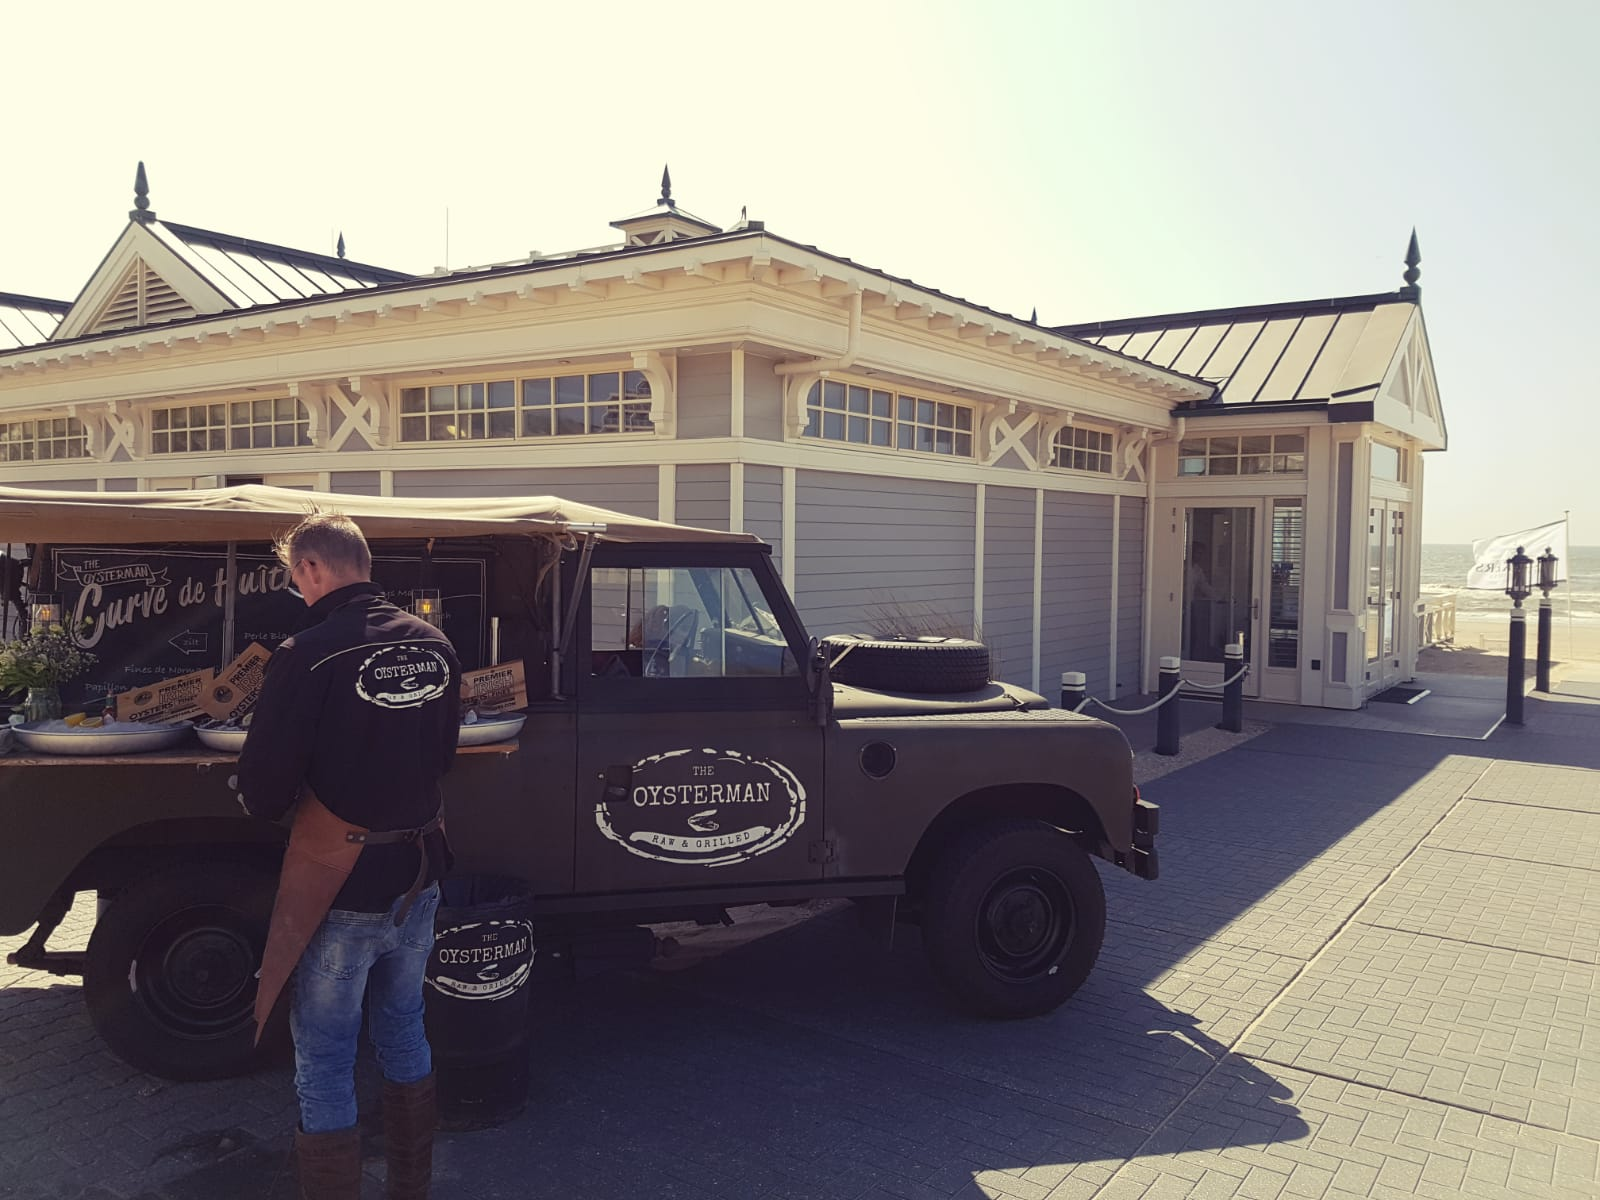 The Oysterman foodtruck